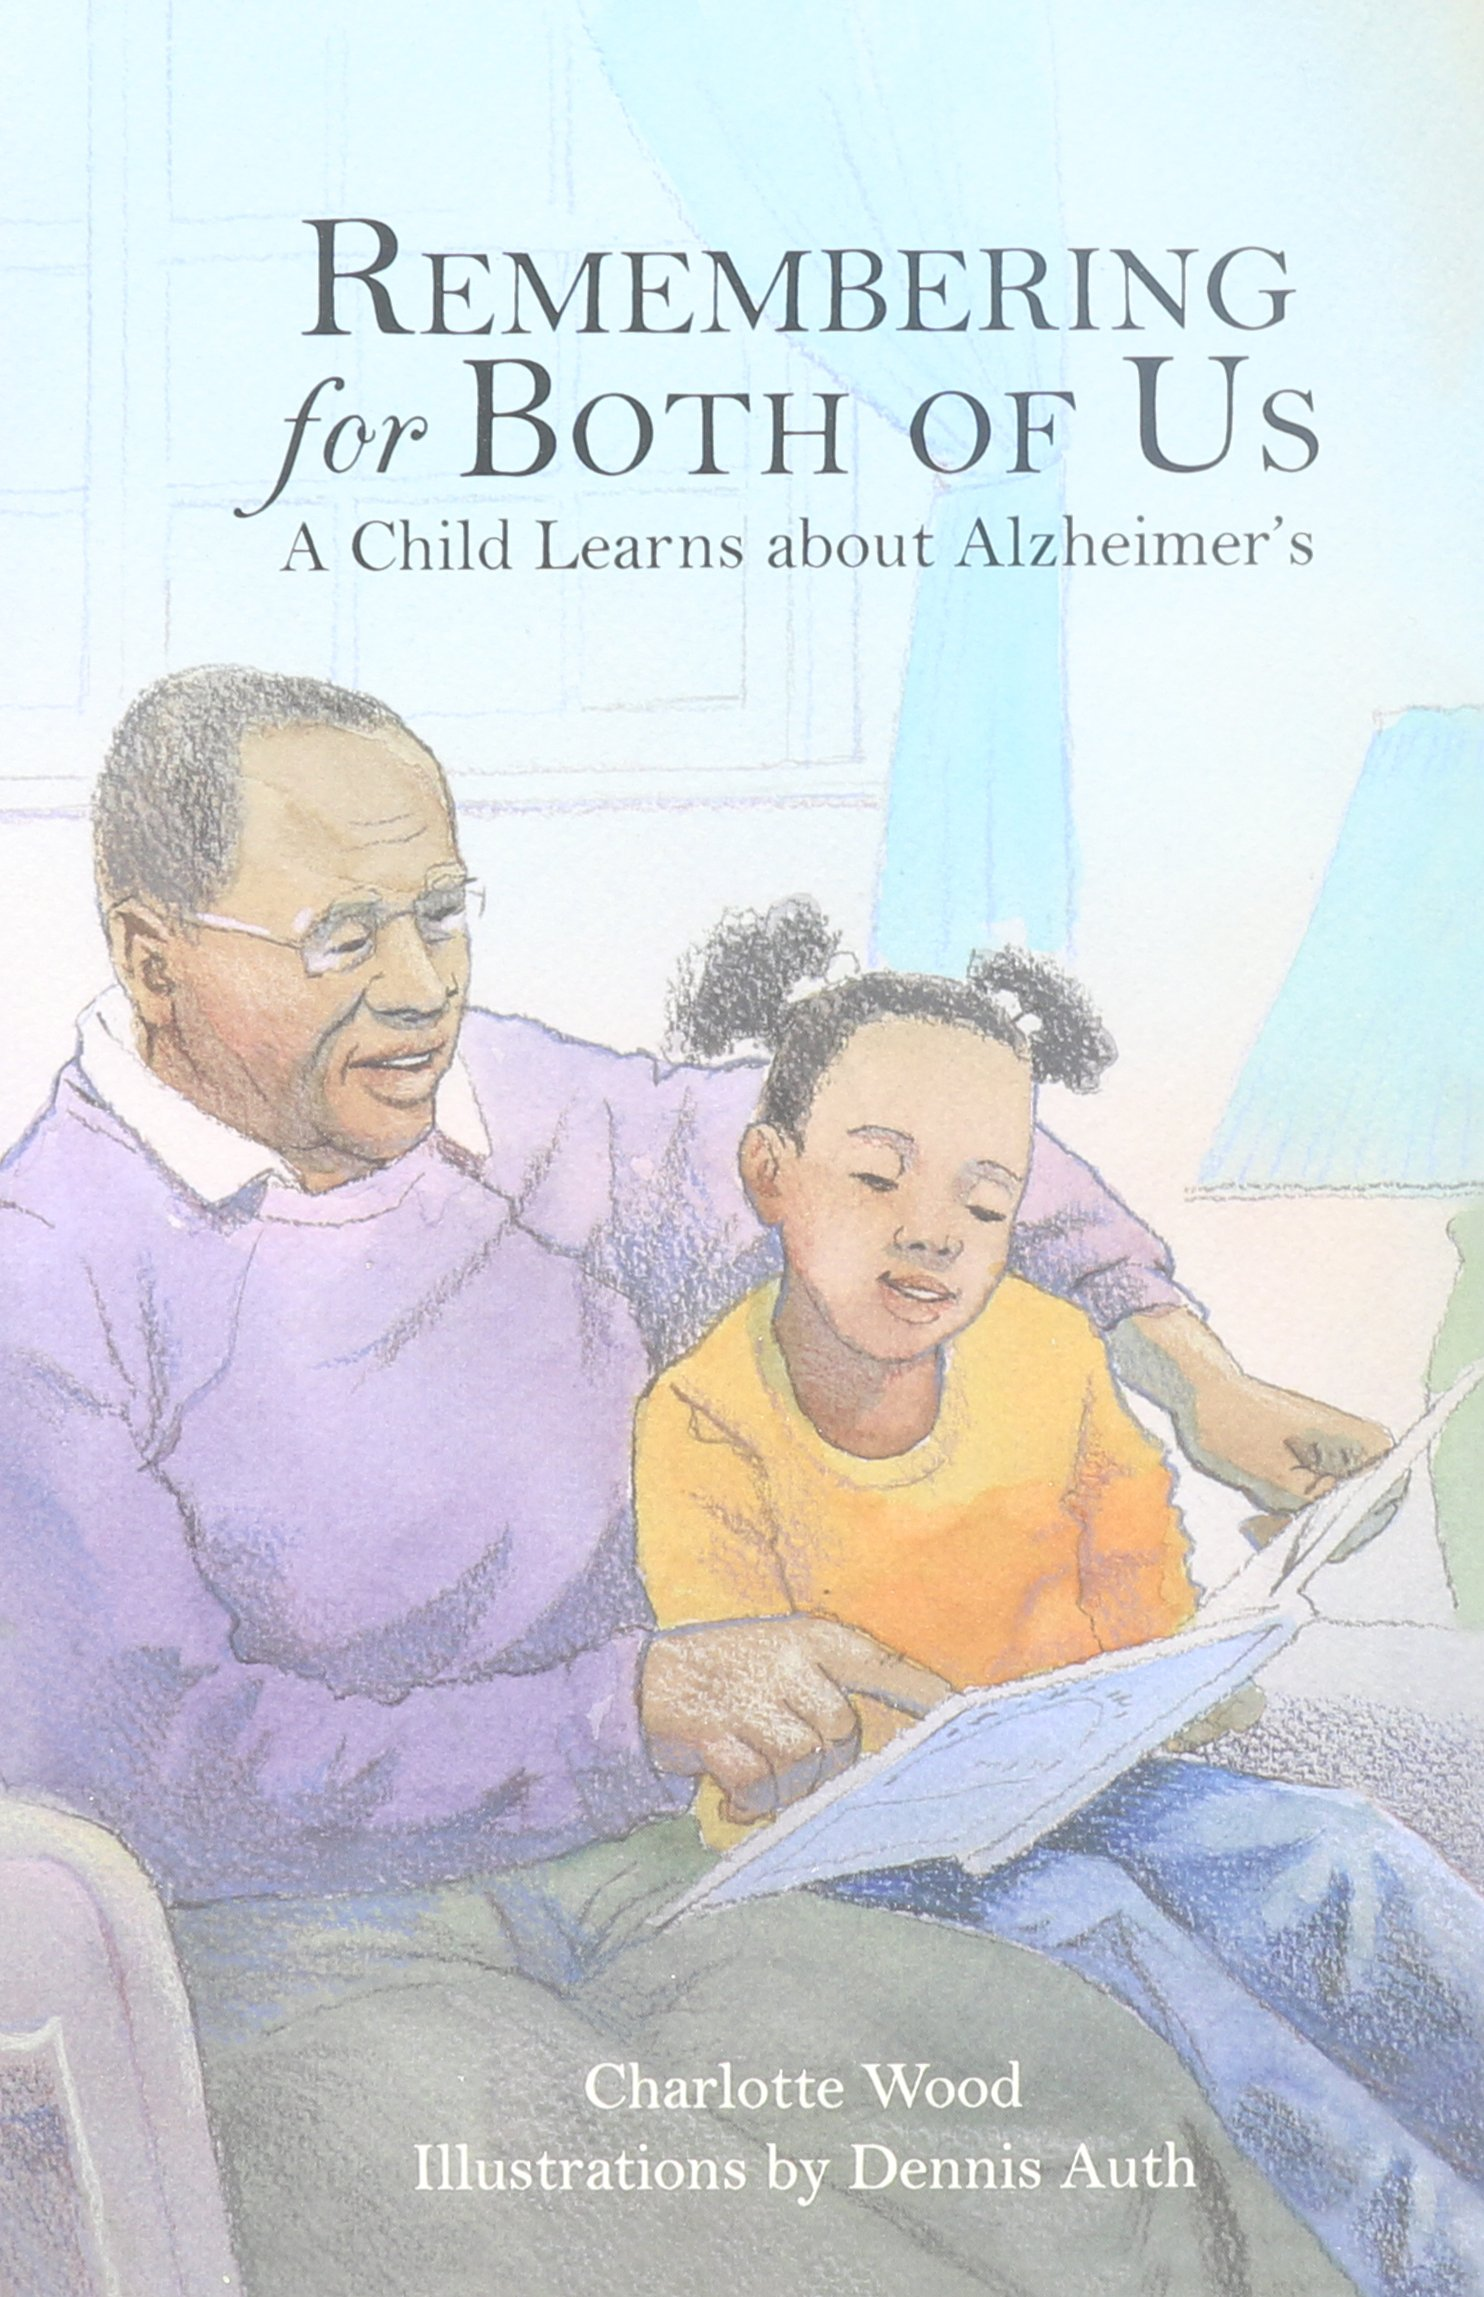 Download Remembering for Both of Us: A Child Learns about Alzheimer's PDF